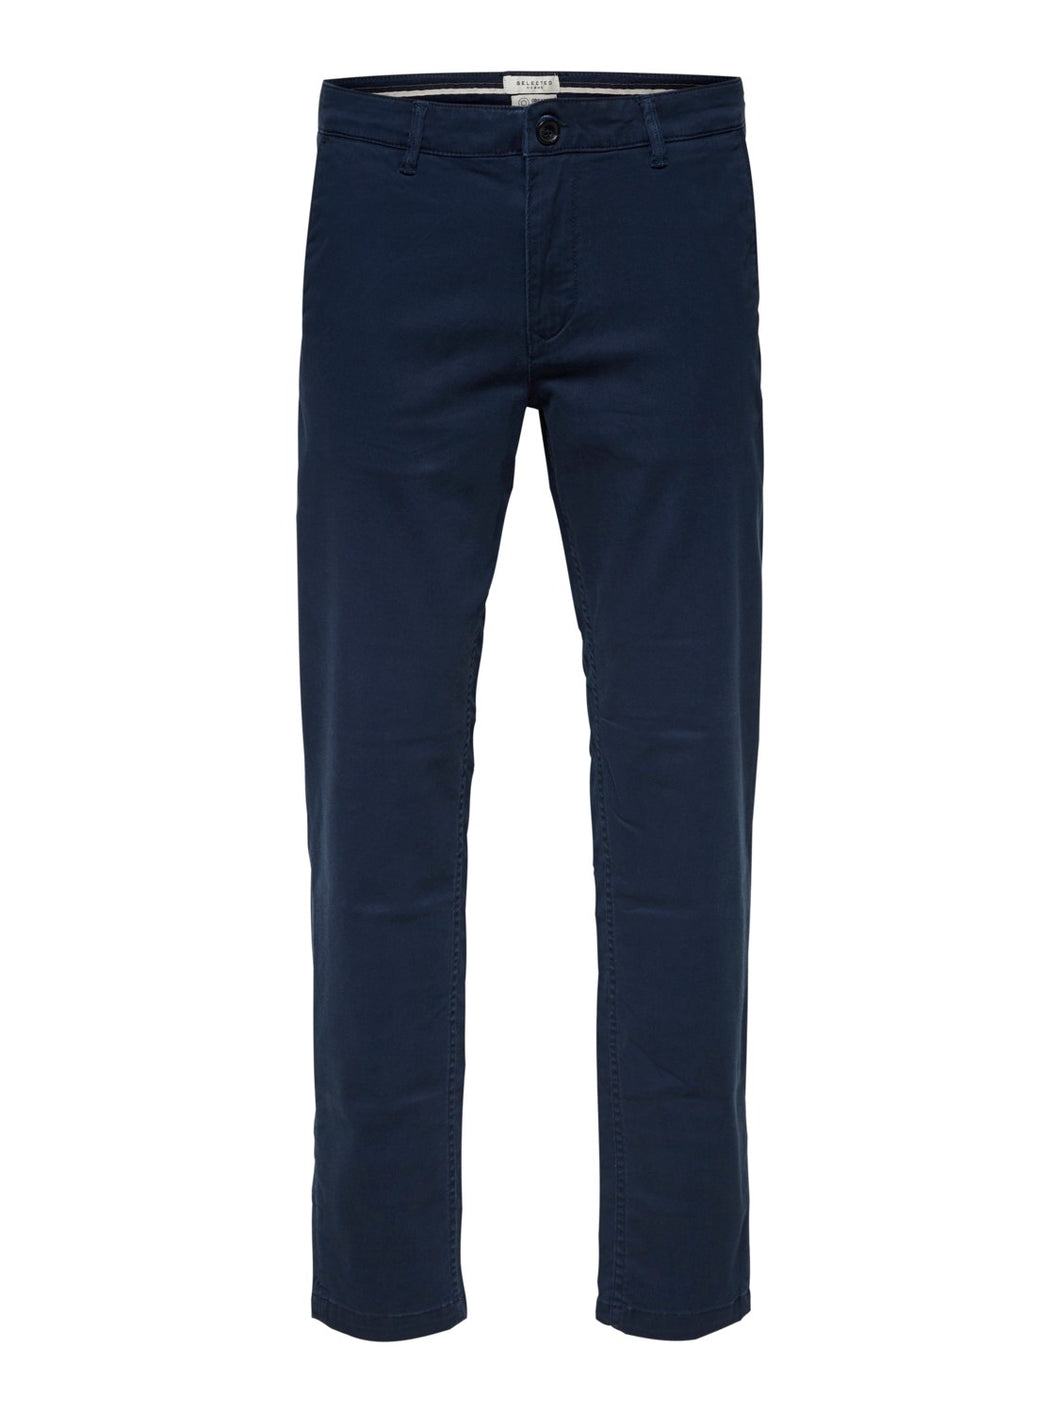 Selected Homme New Paris Flex Chino Navy